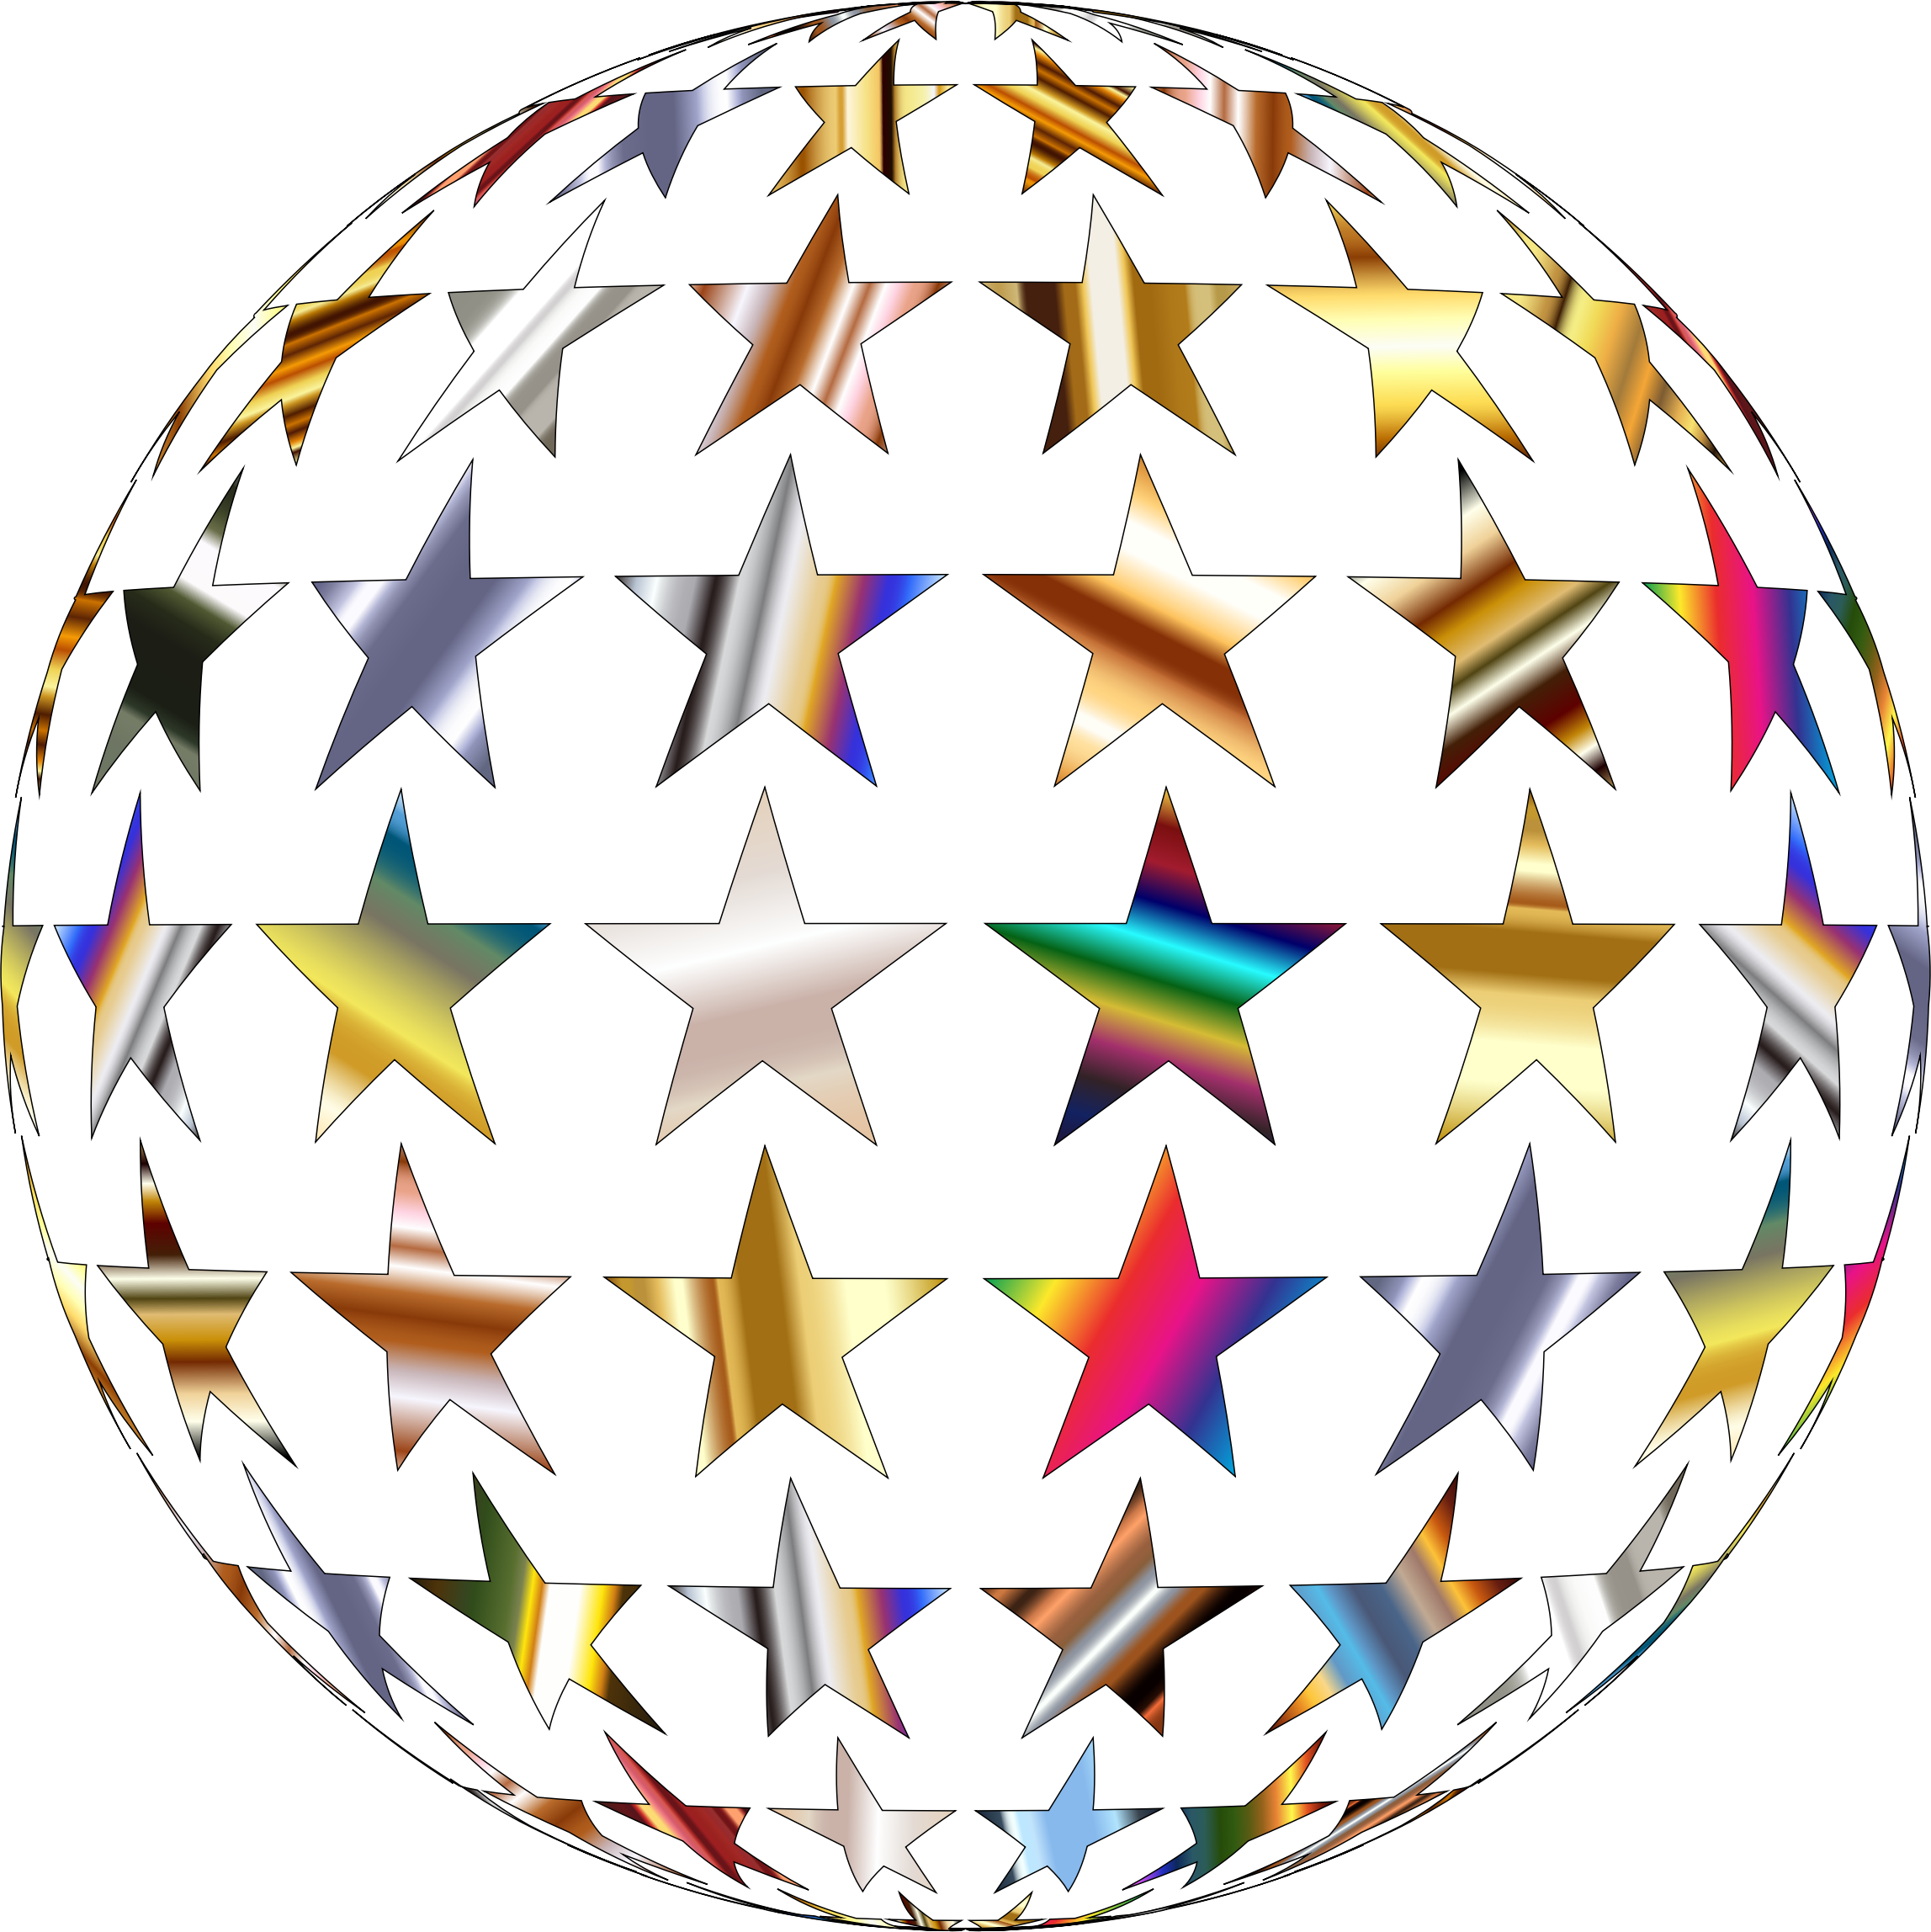 Metallic Shiny Stars Sphere by GDJ